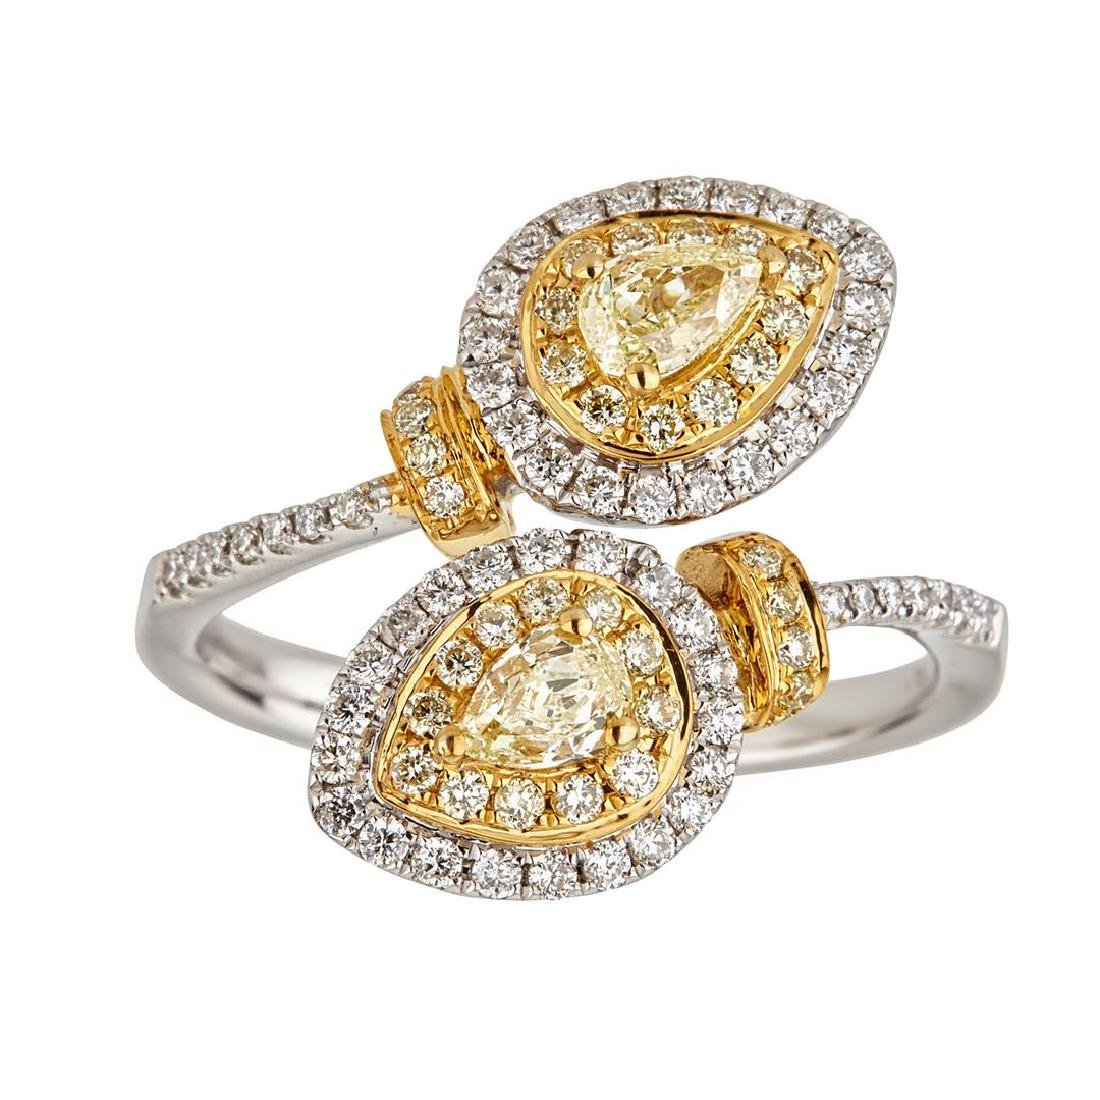 1.09 ctw Yellow and White Diamond Ring - 18KT White and